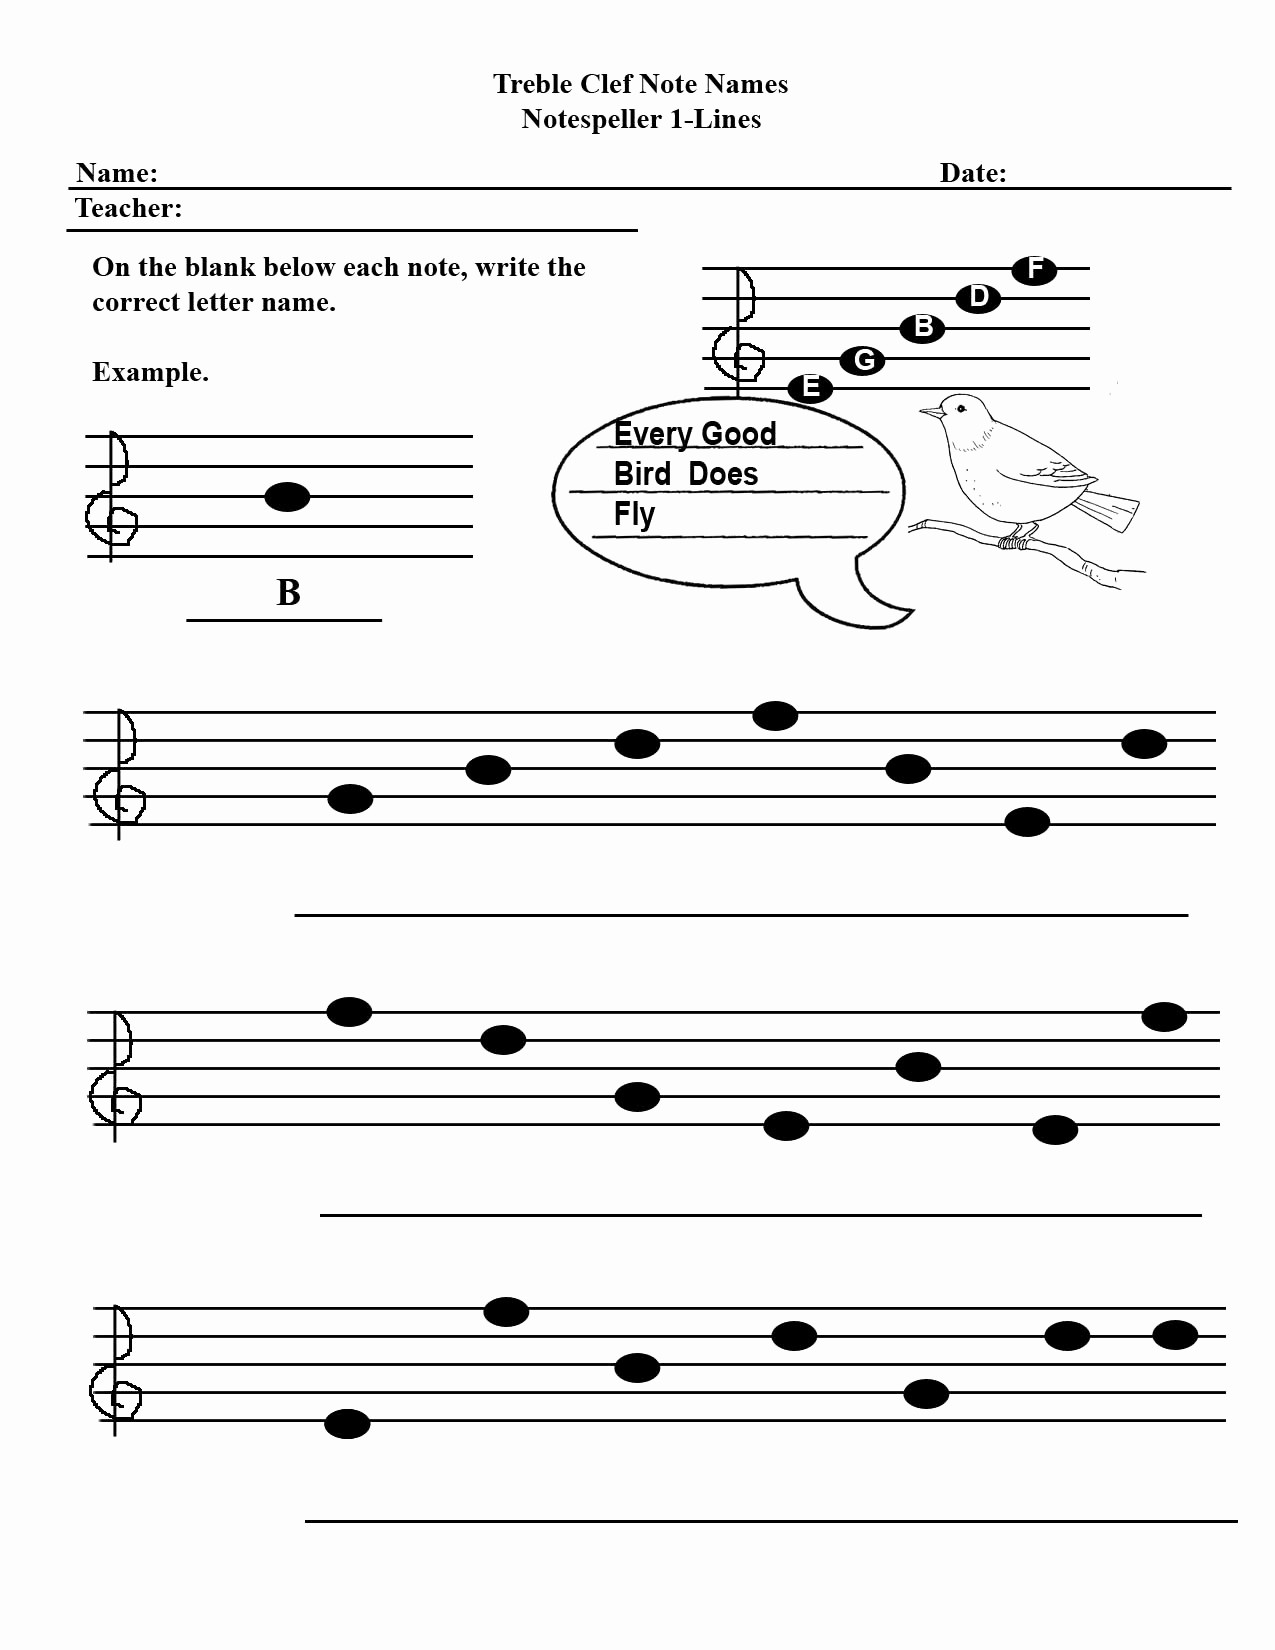 Blank Treble Clef Staff Paper Best Of 3 4 Printable Staff Paper